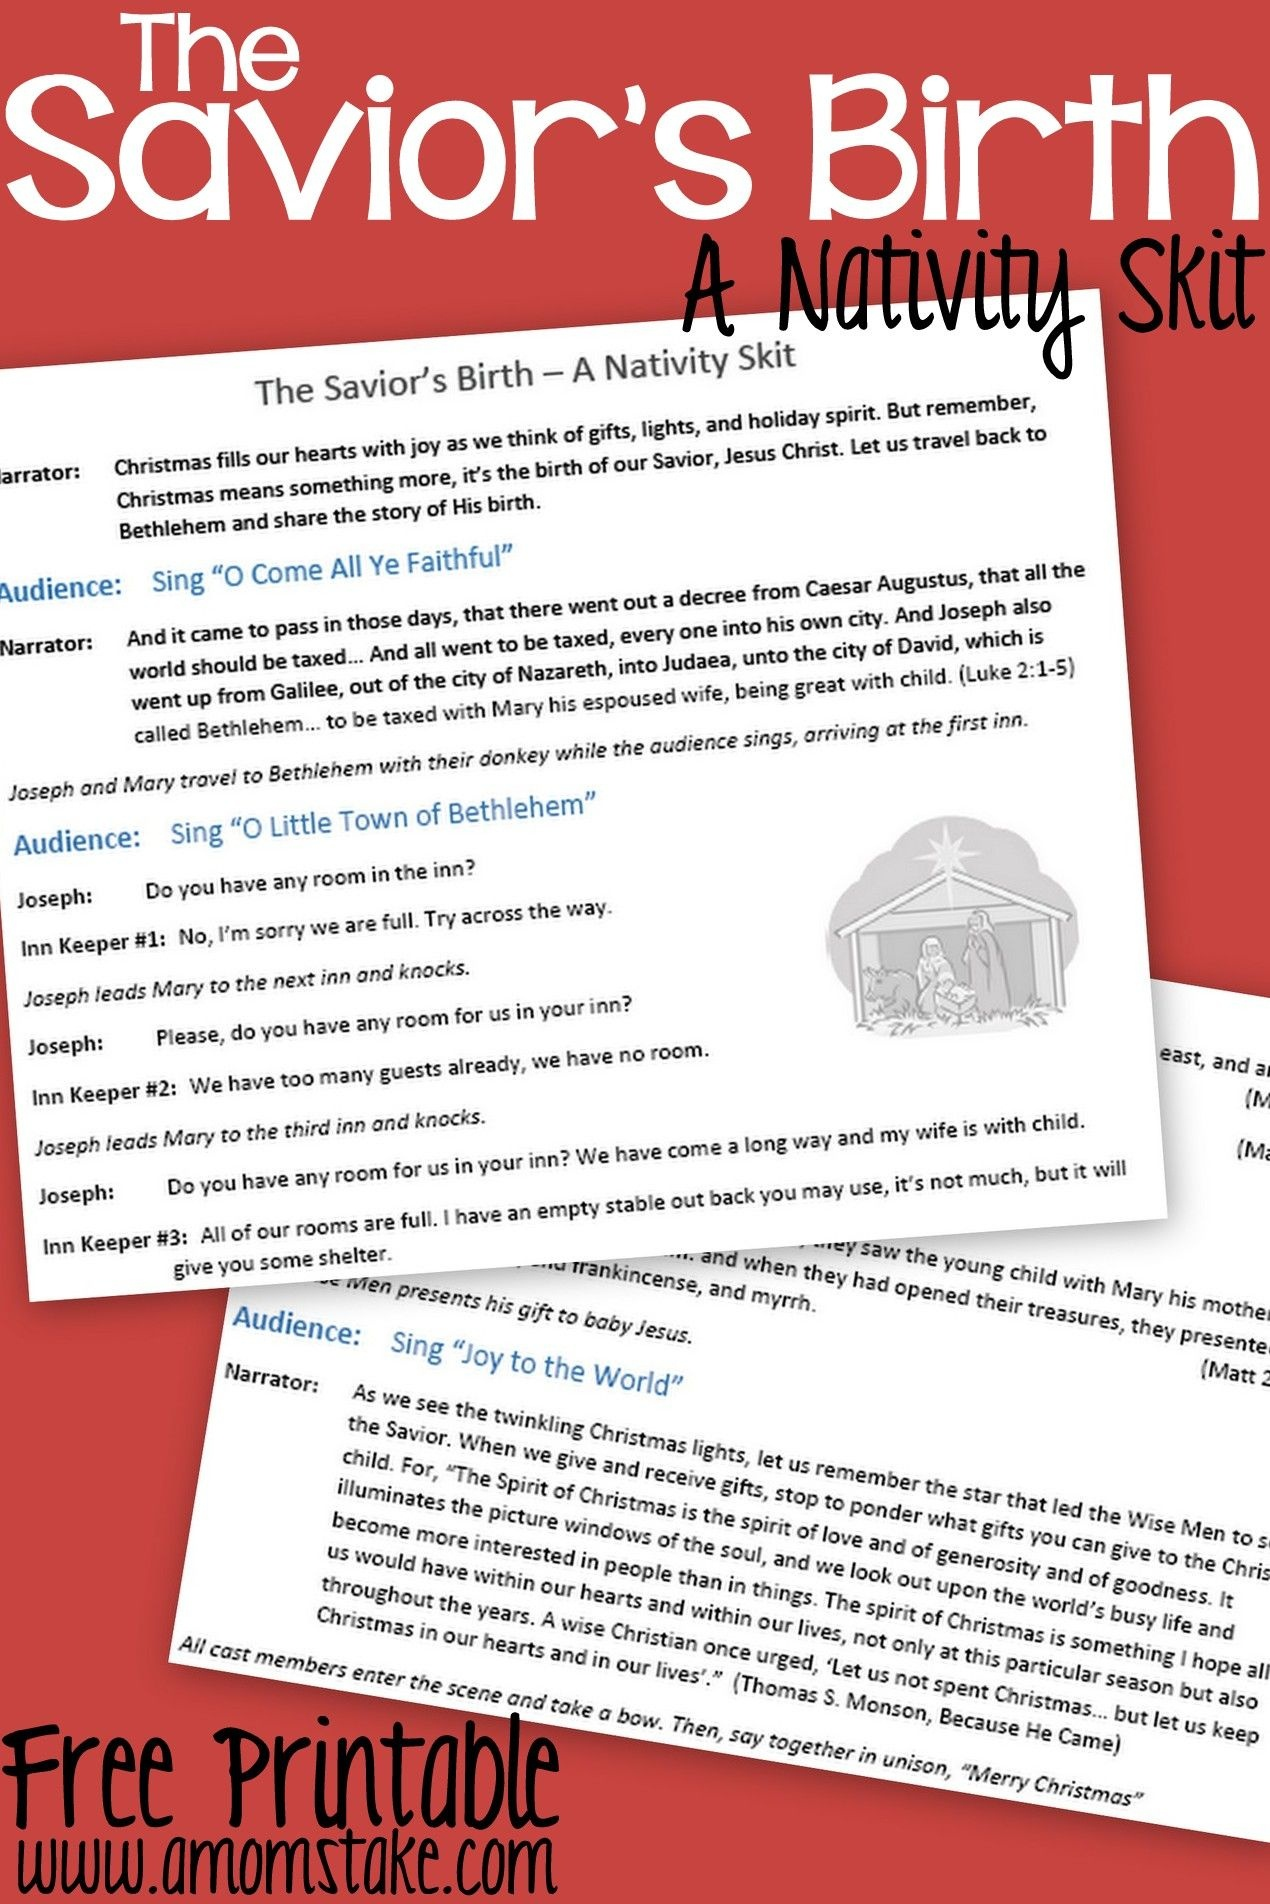 Free Printable Nativity Skit To Act Out The Birth Of The Savior - Free Printable Halloween Play Scripts